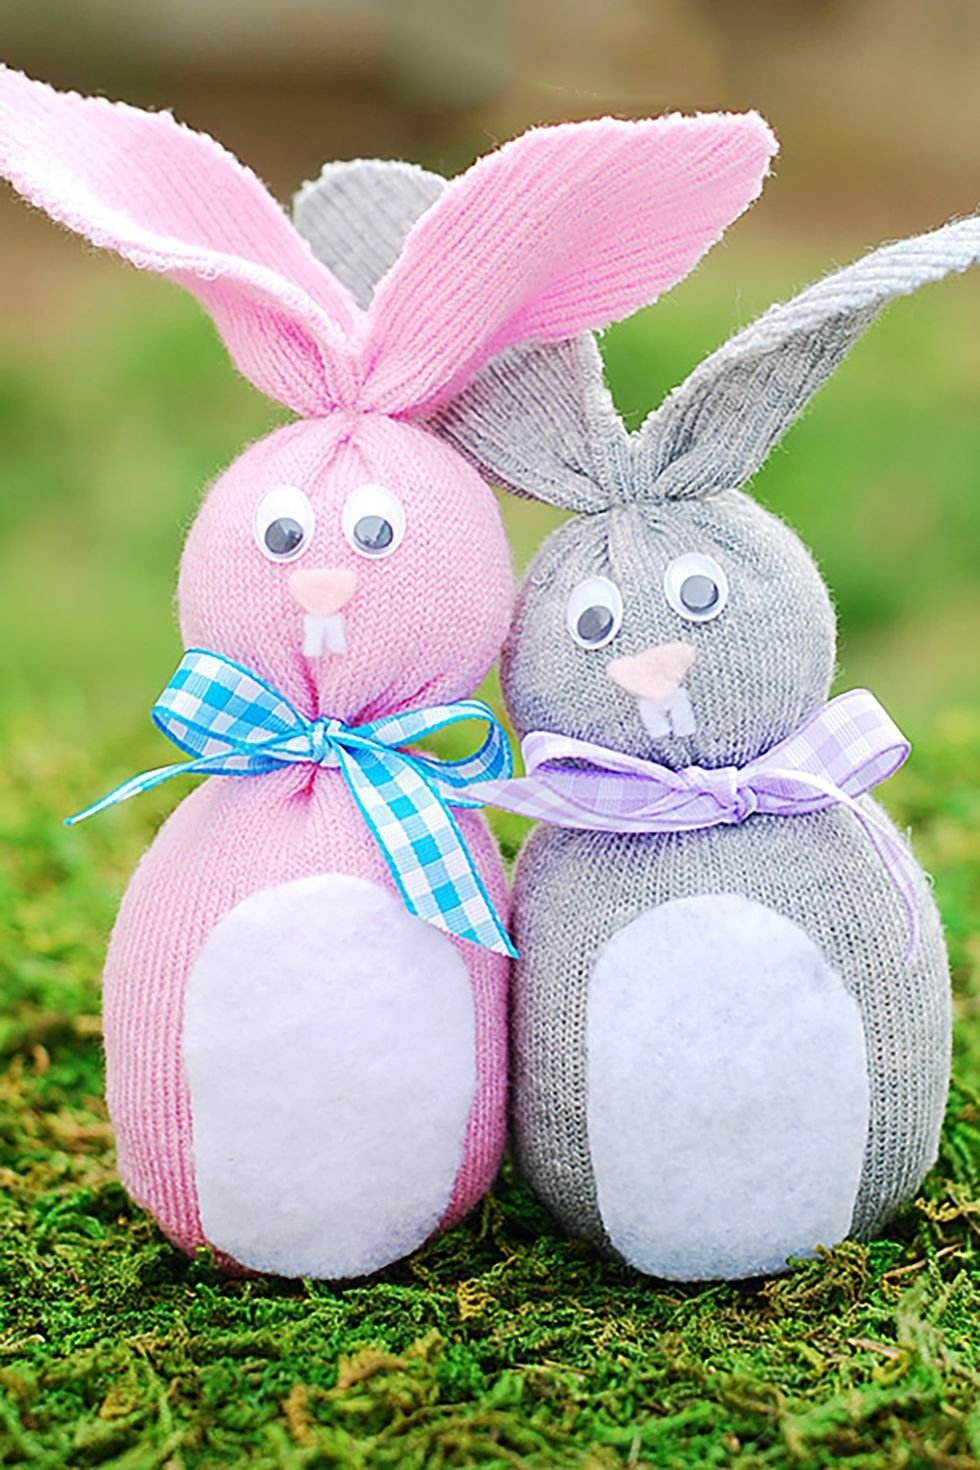 10 Elegant Easter Picture Ideas For Toddlers 38 easter crafts for kids fun diy ideas for kid friendly easter